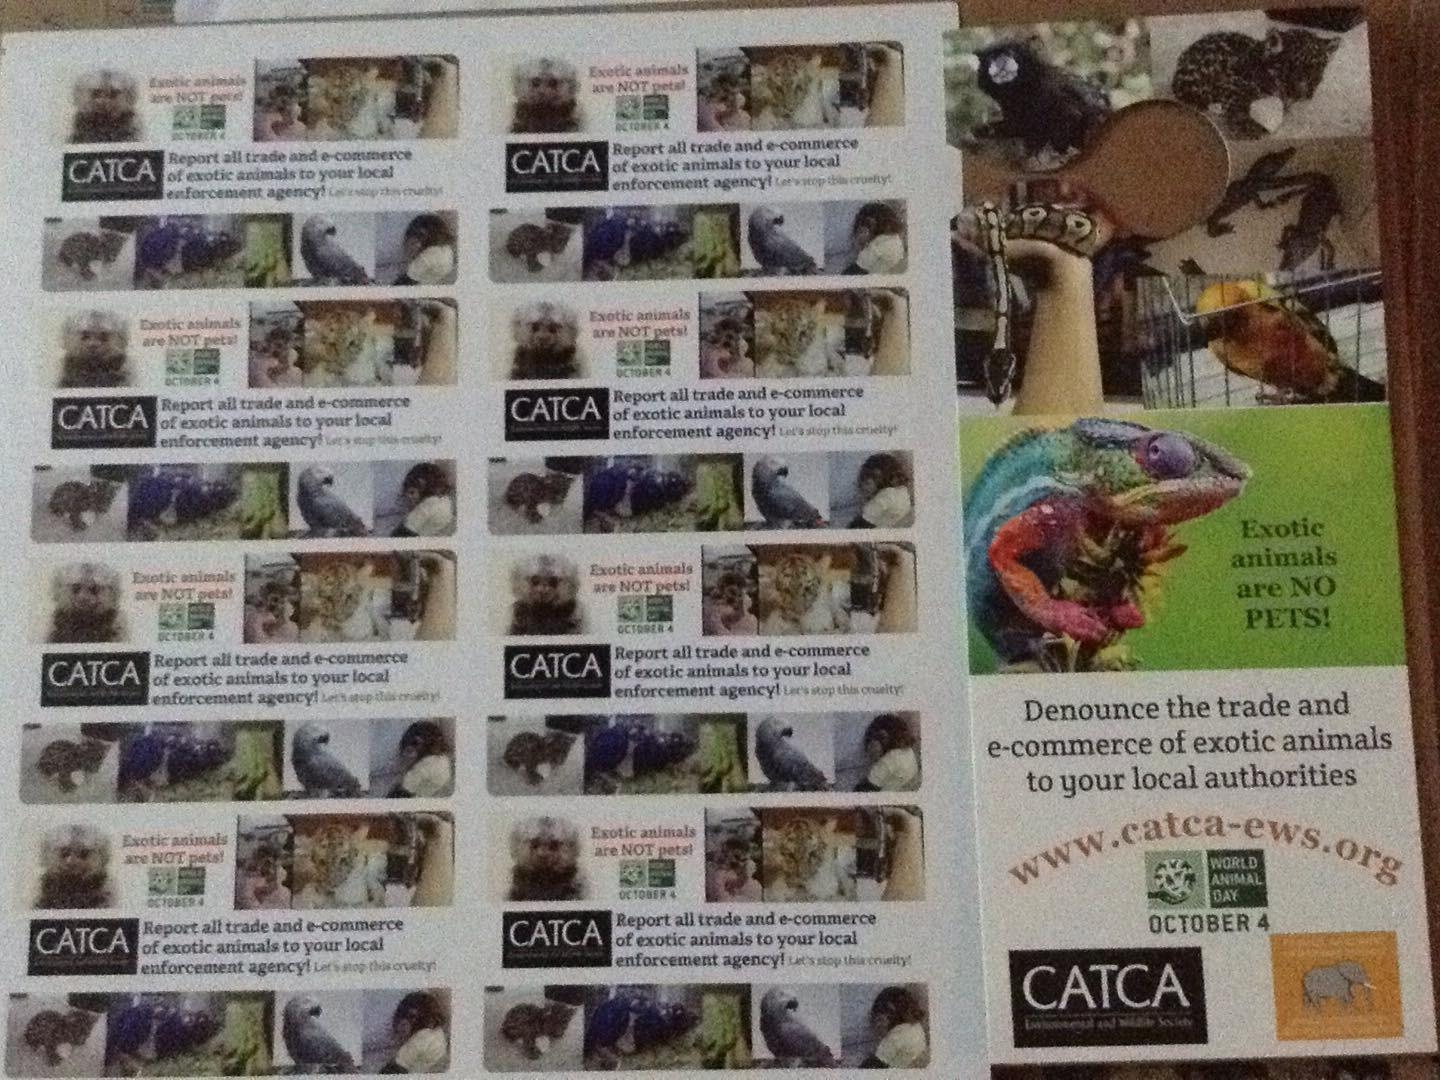 Exotic animals awareness from CATCA Environmental and Wildlife Society